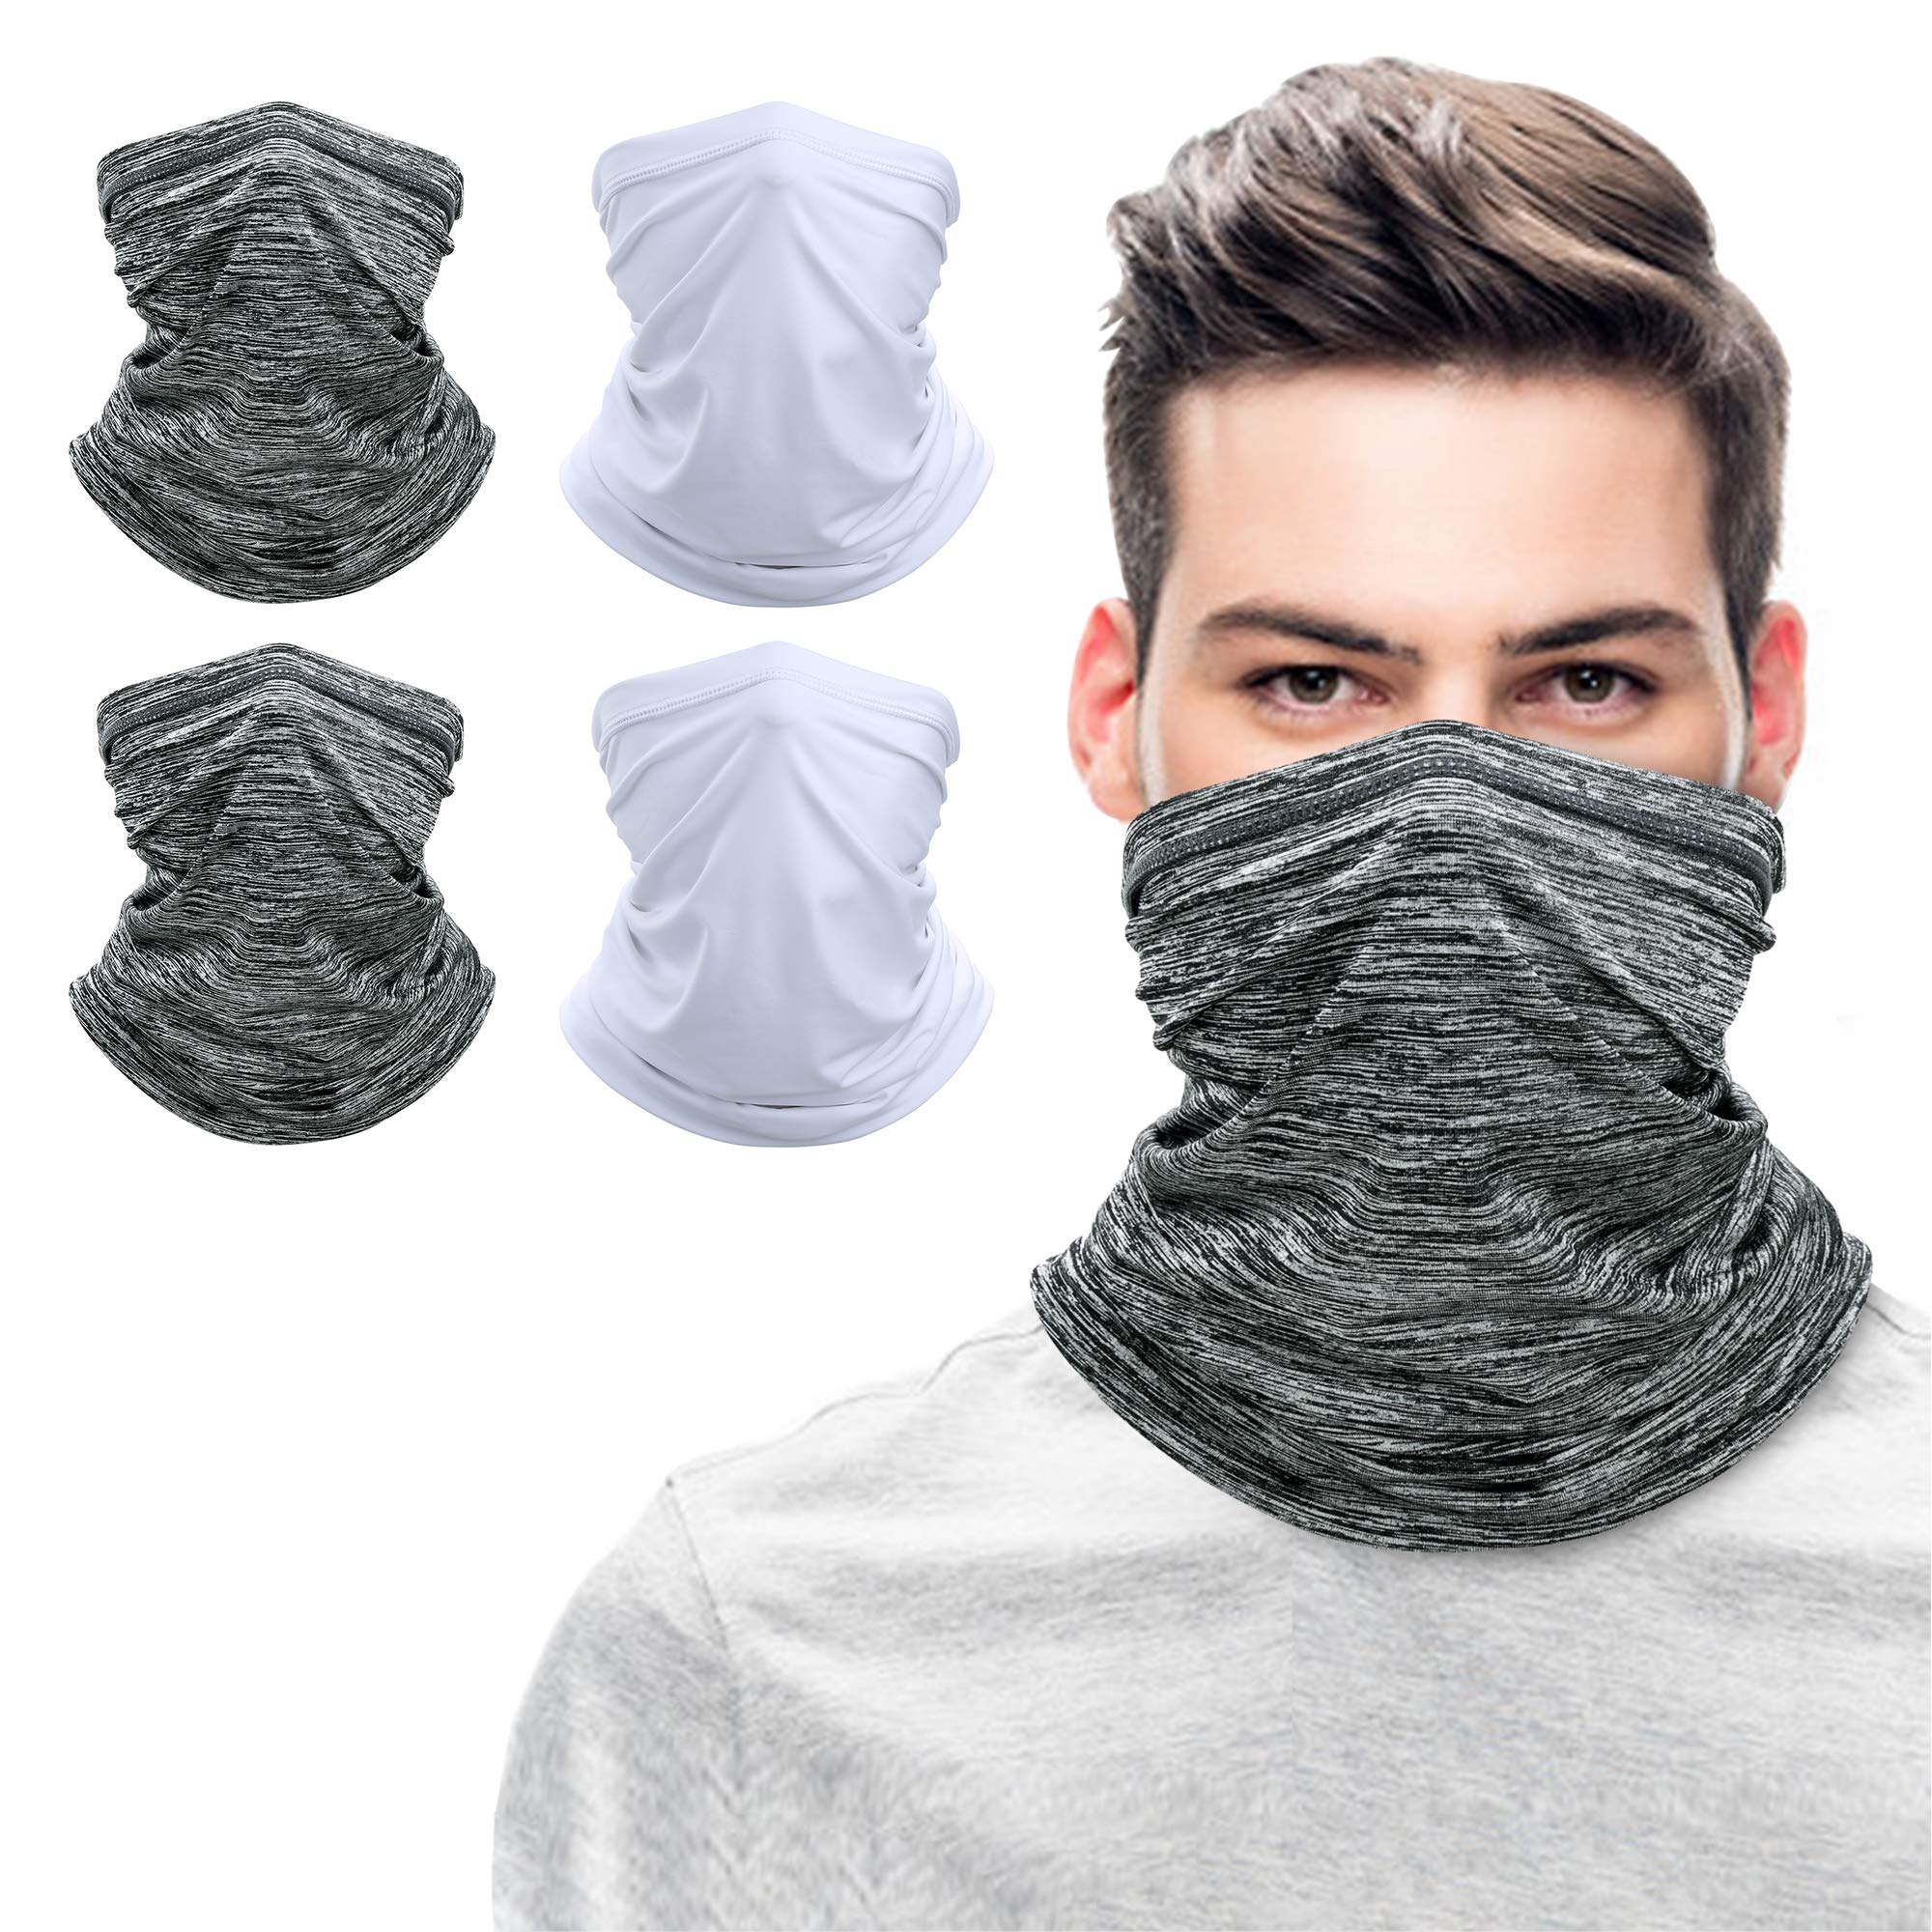 Bandana Face Mask Mouth Mask Bandanas for Men Face Scarf Neck Gaiters for Men Motorcycle Mask Black